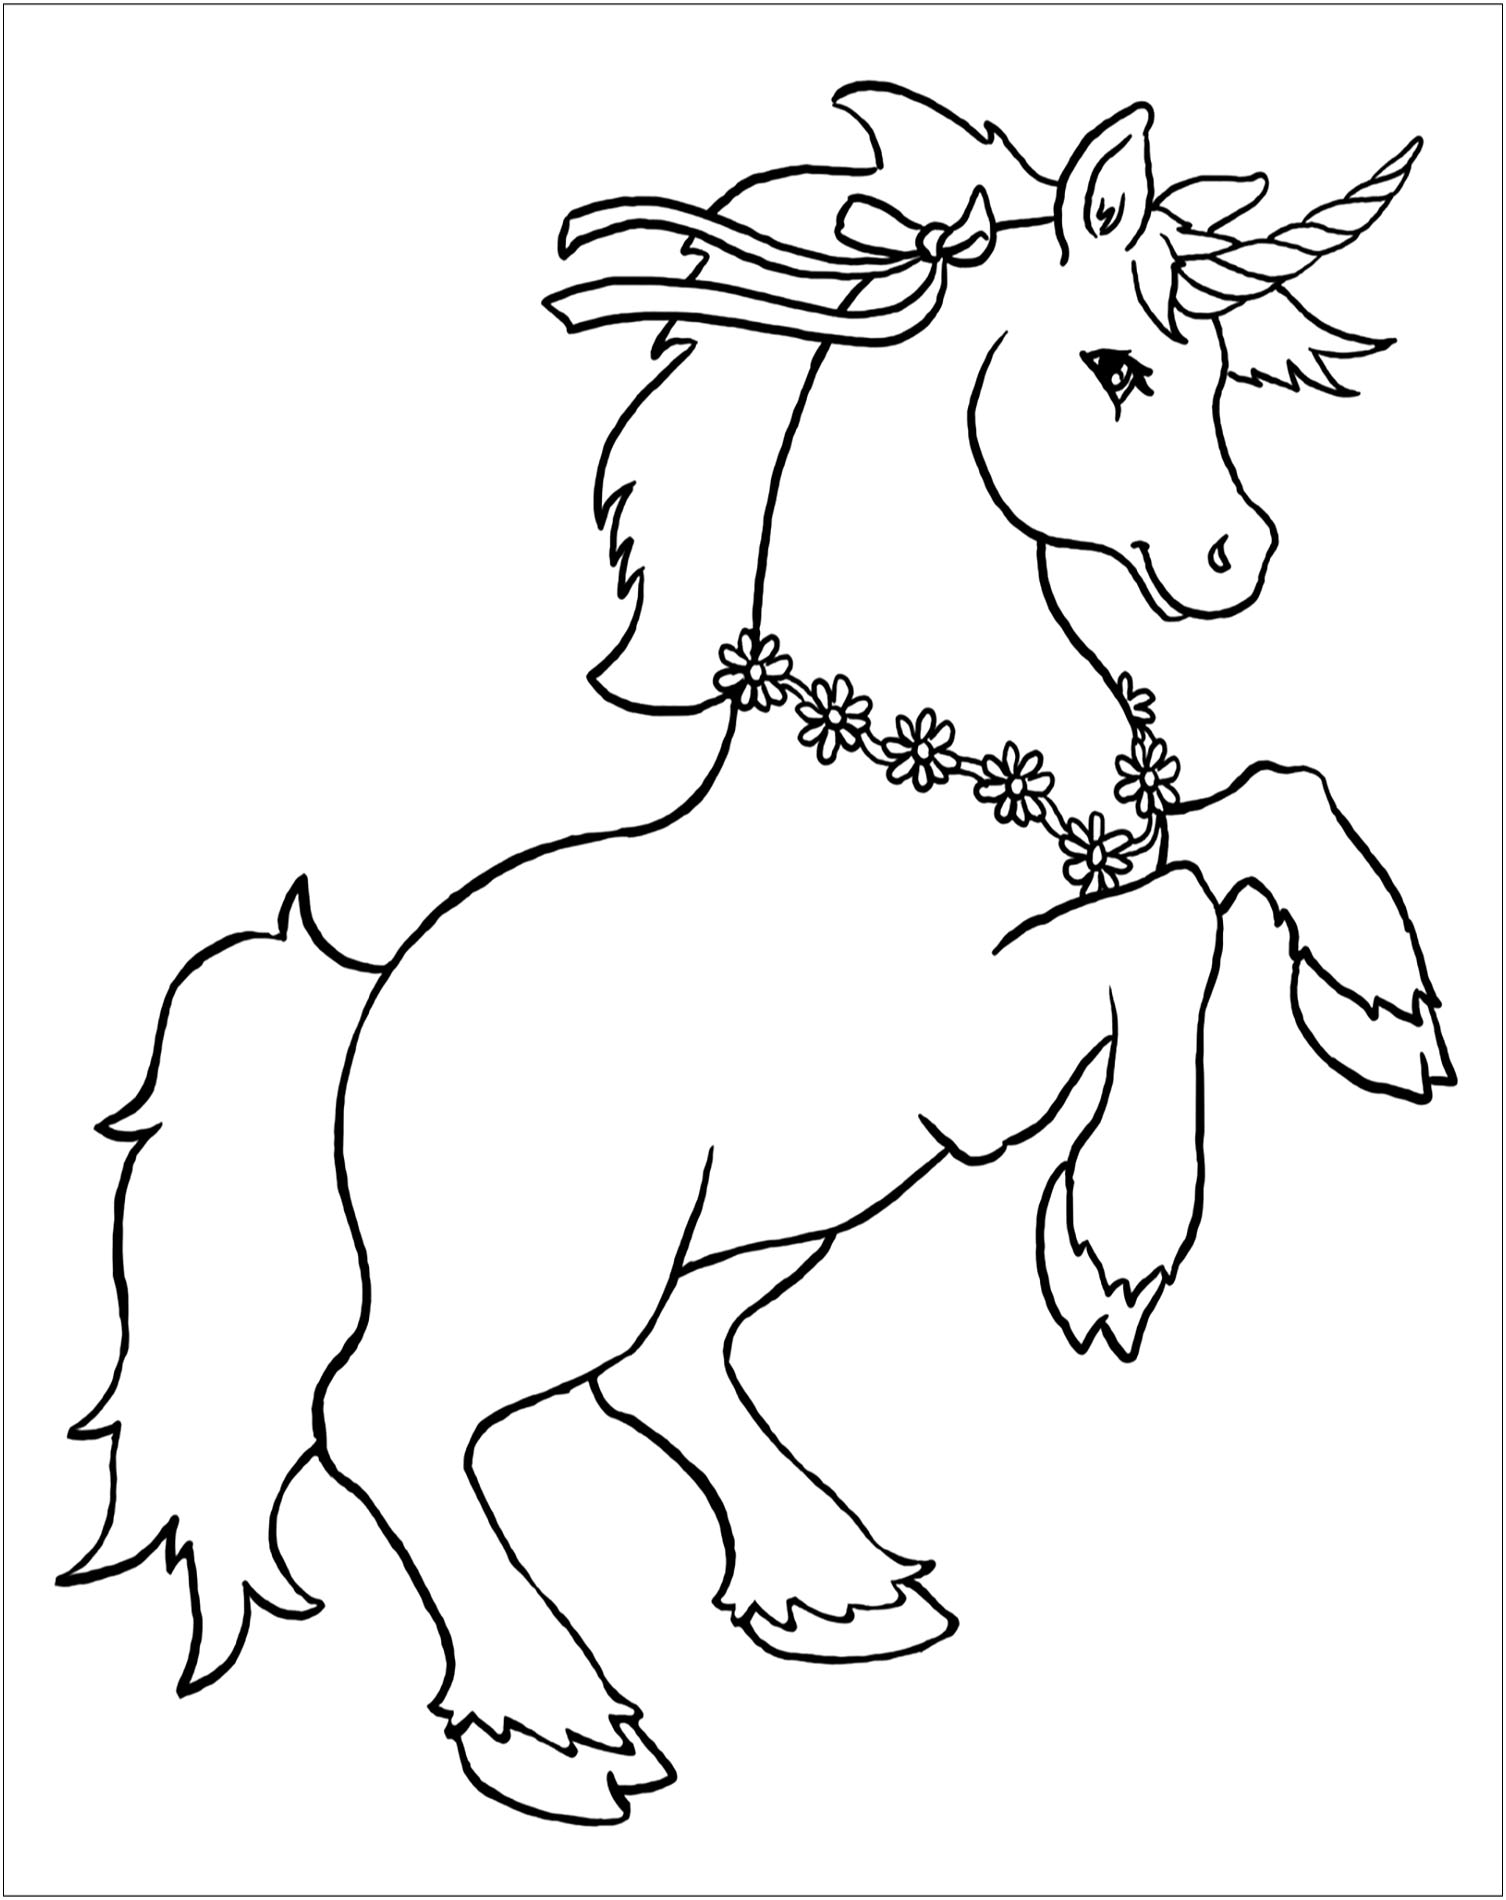 coloring unicorn kids drawing unicorns to download unicorns kids coloring pages coloring unicorn kids drawing